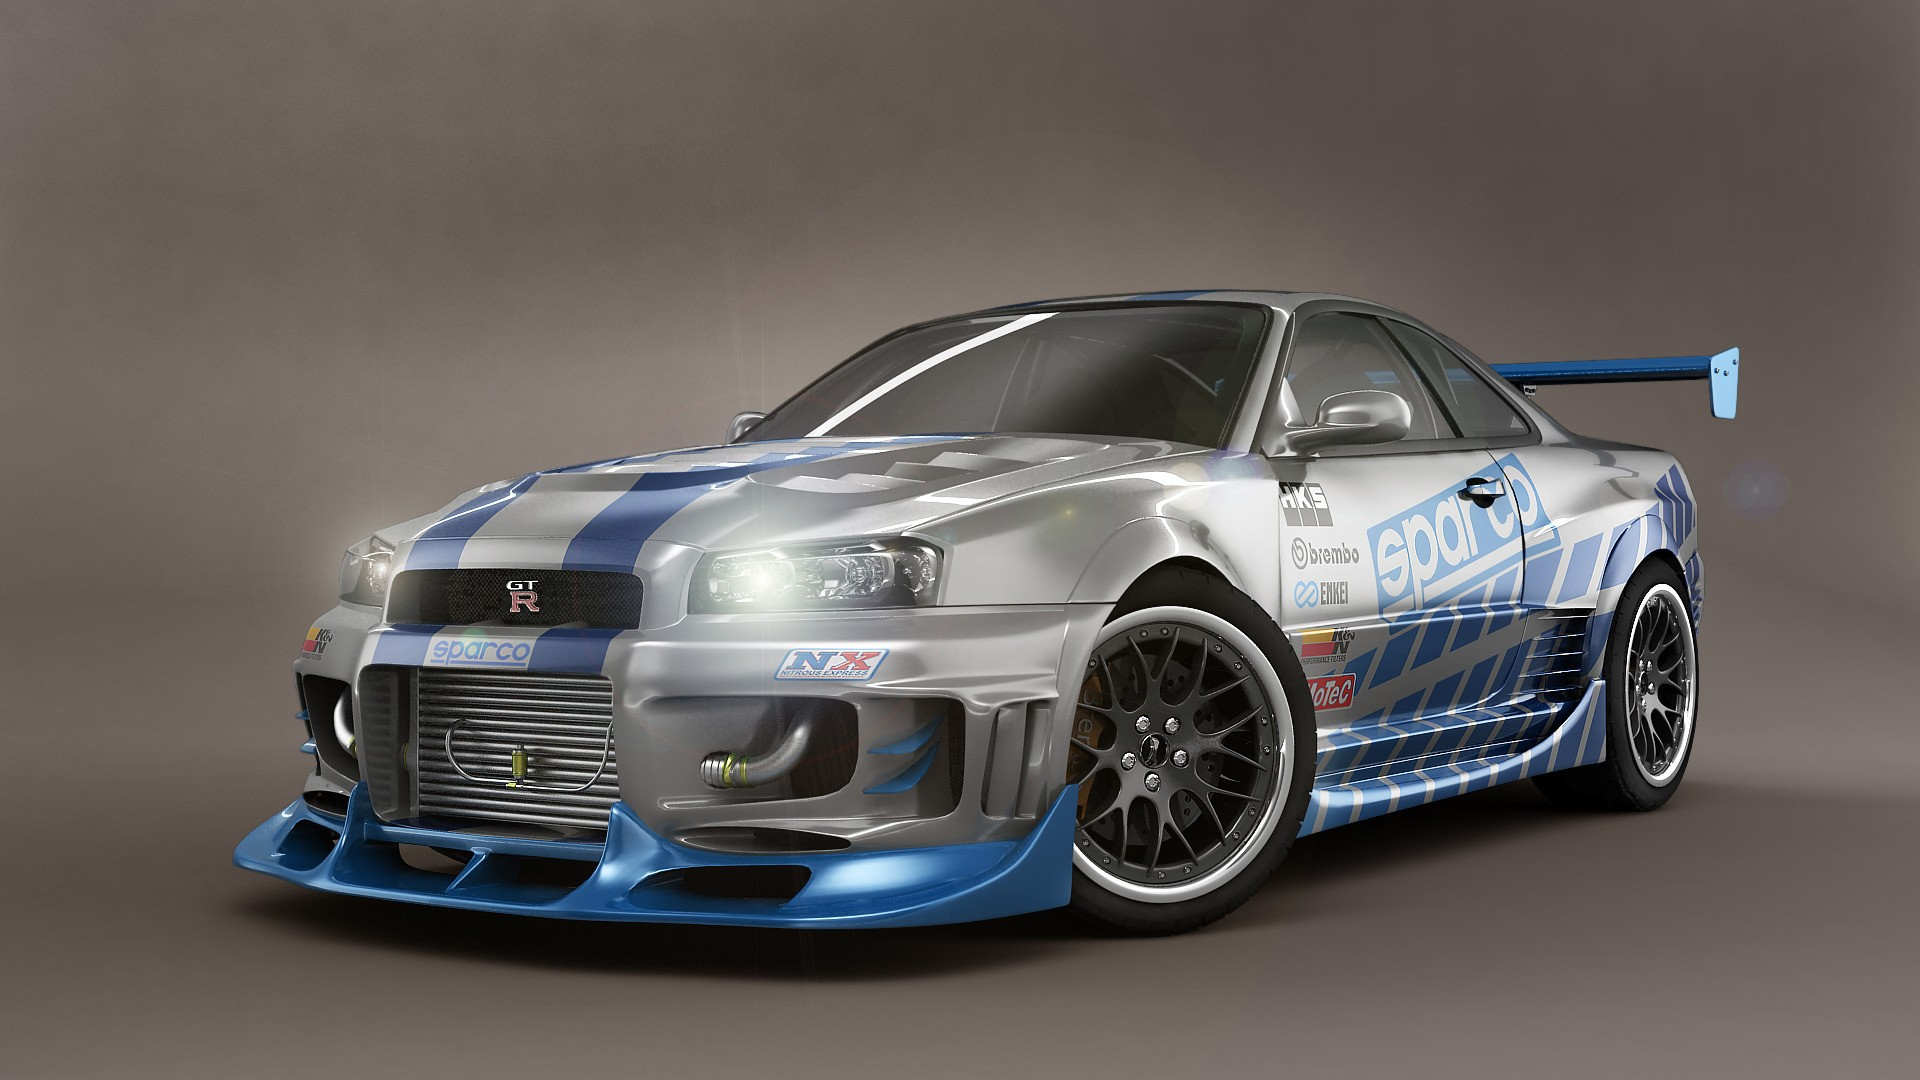 Fast car wallpapers and images   wallpapers pictures photos 1920x1080